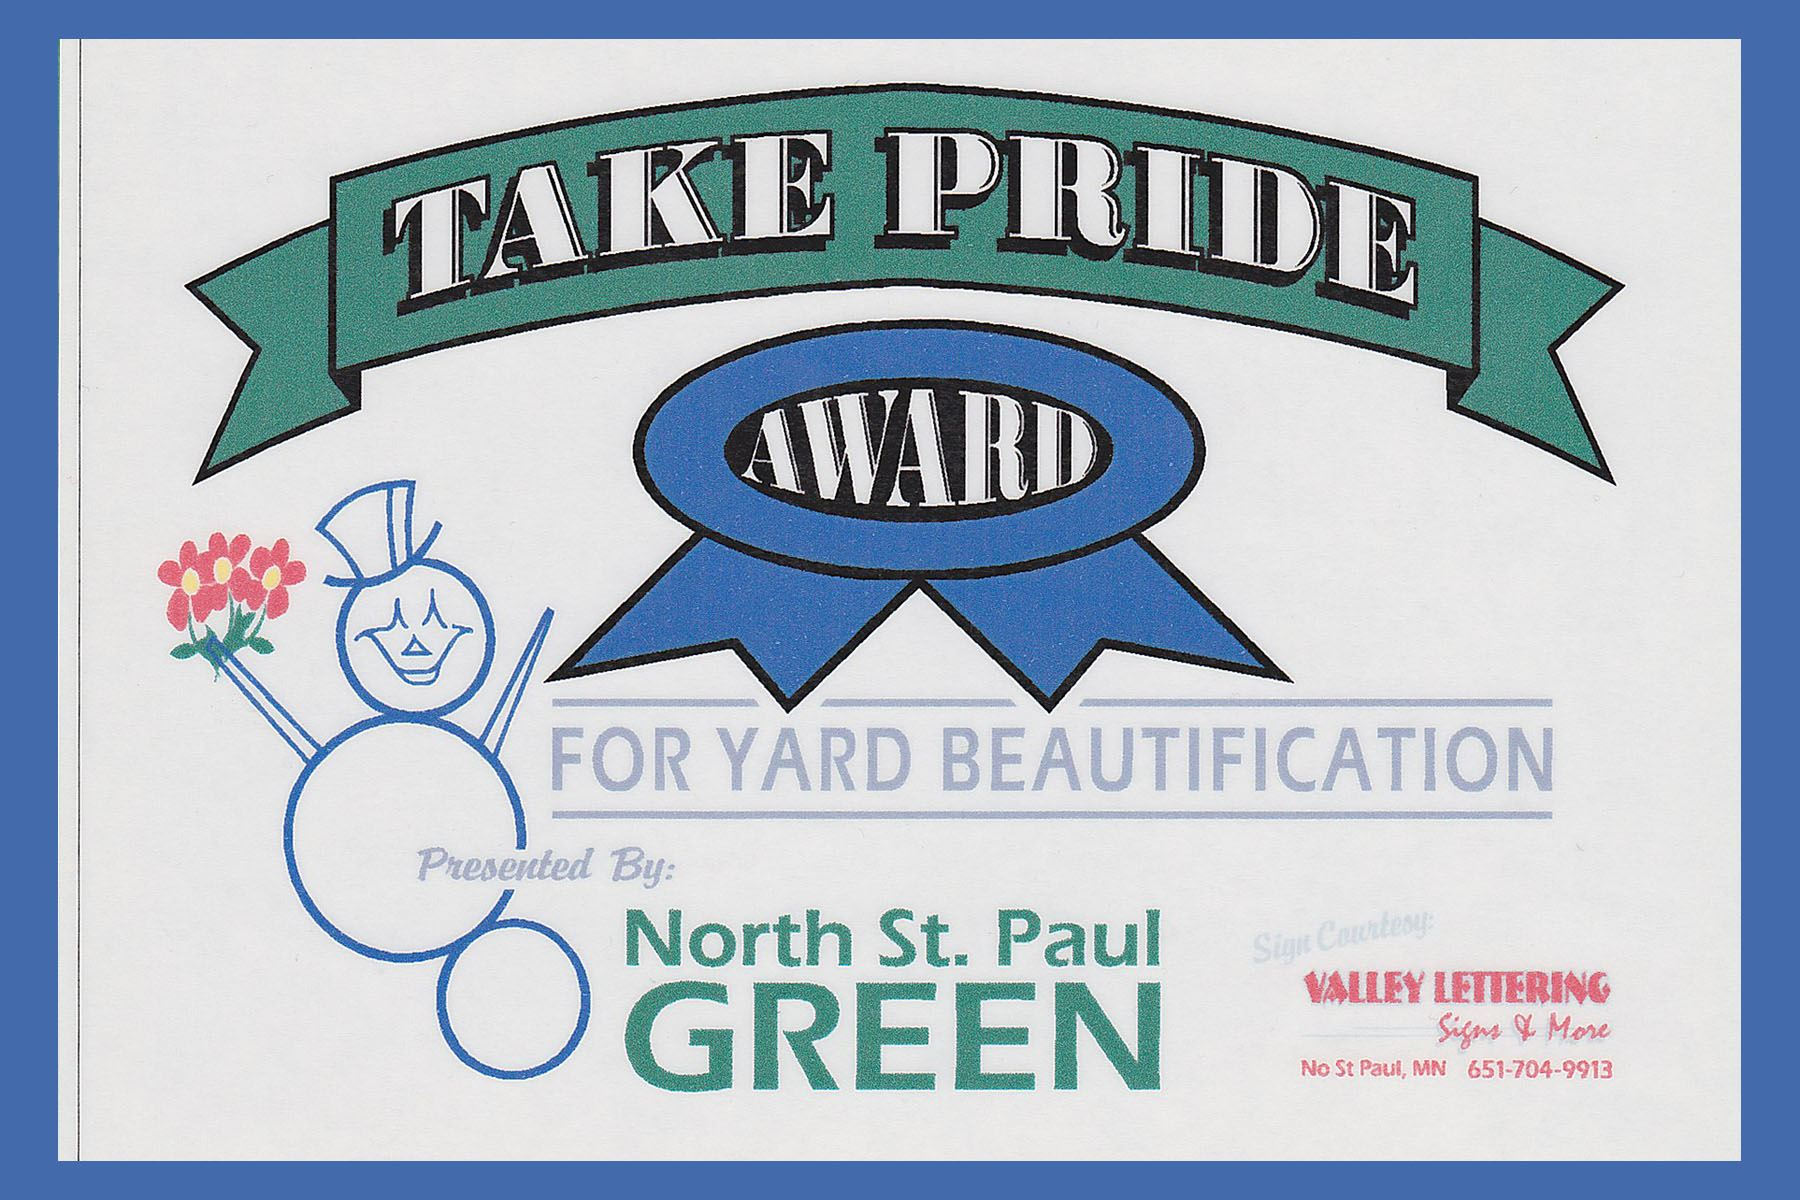 Take Pride Award for Yard Beautification